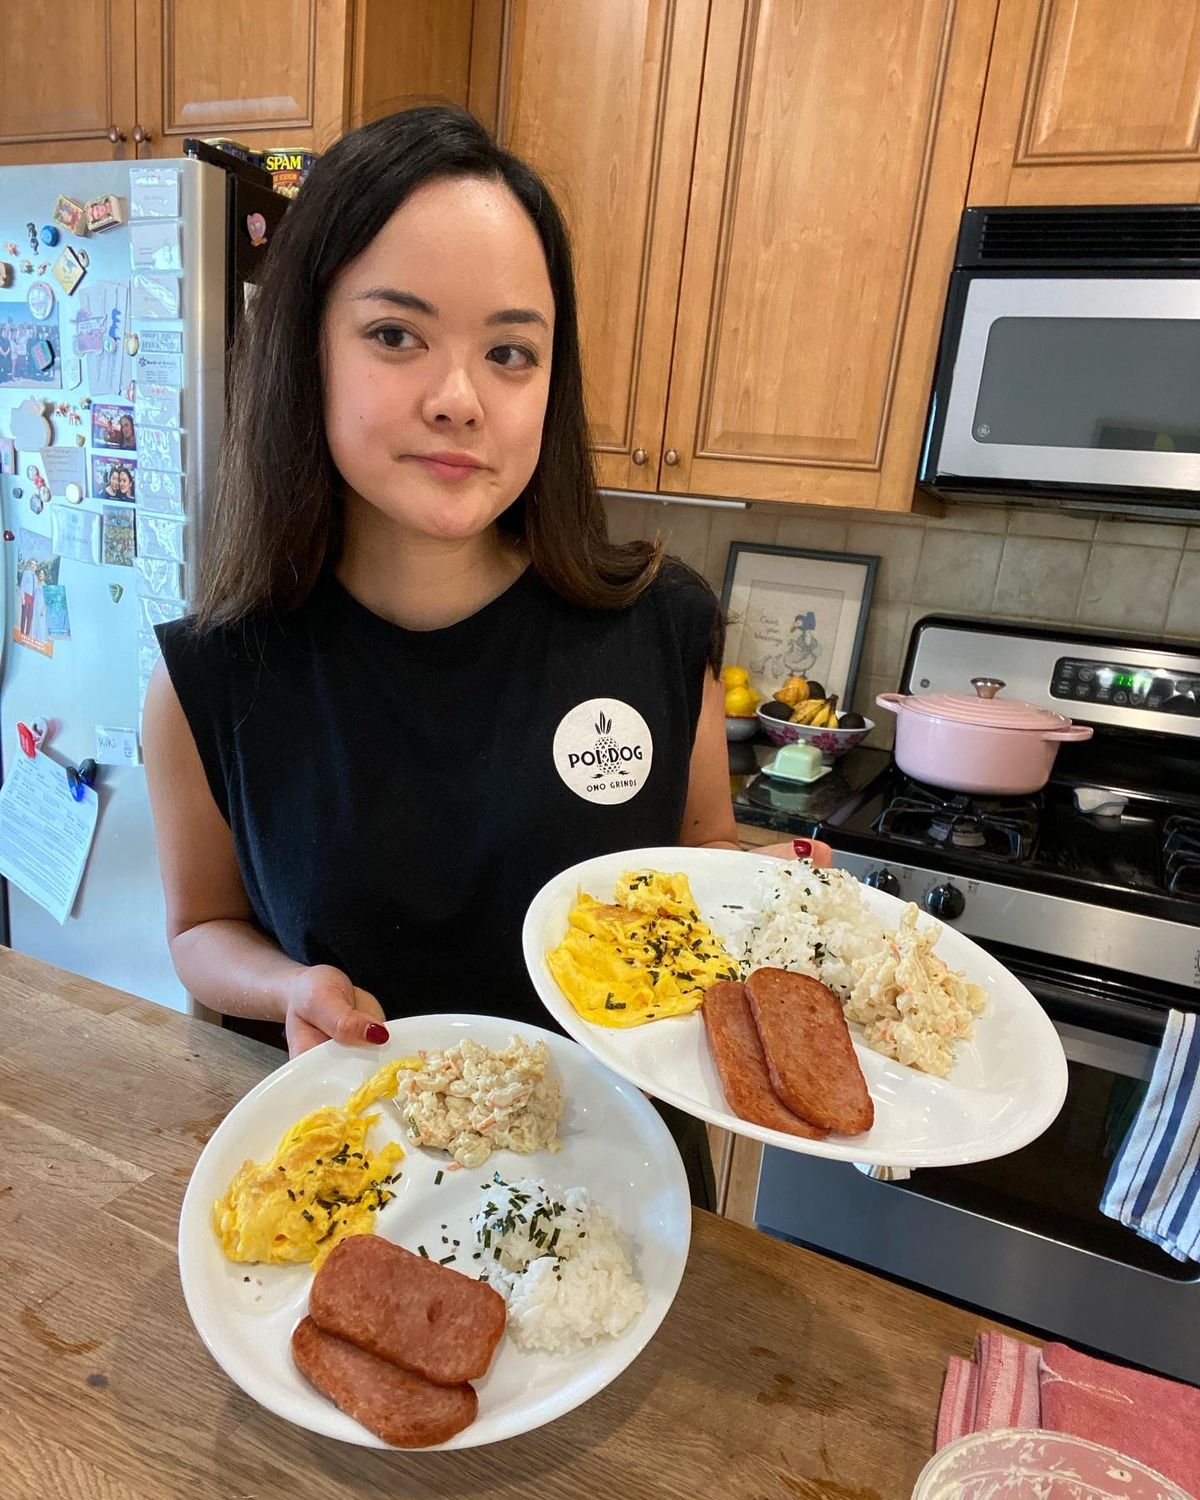 woman standing in home kitchen holding two plates of food